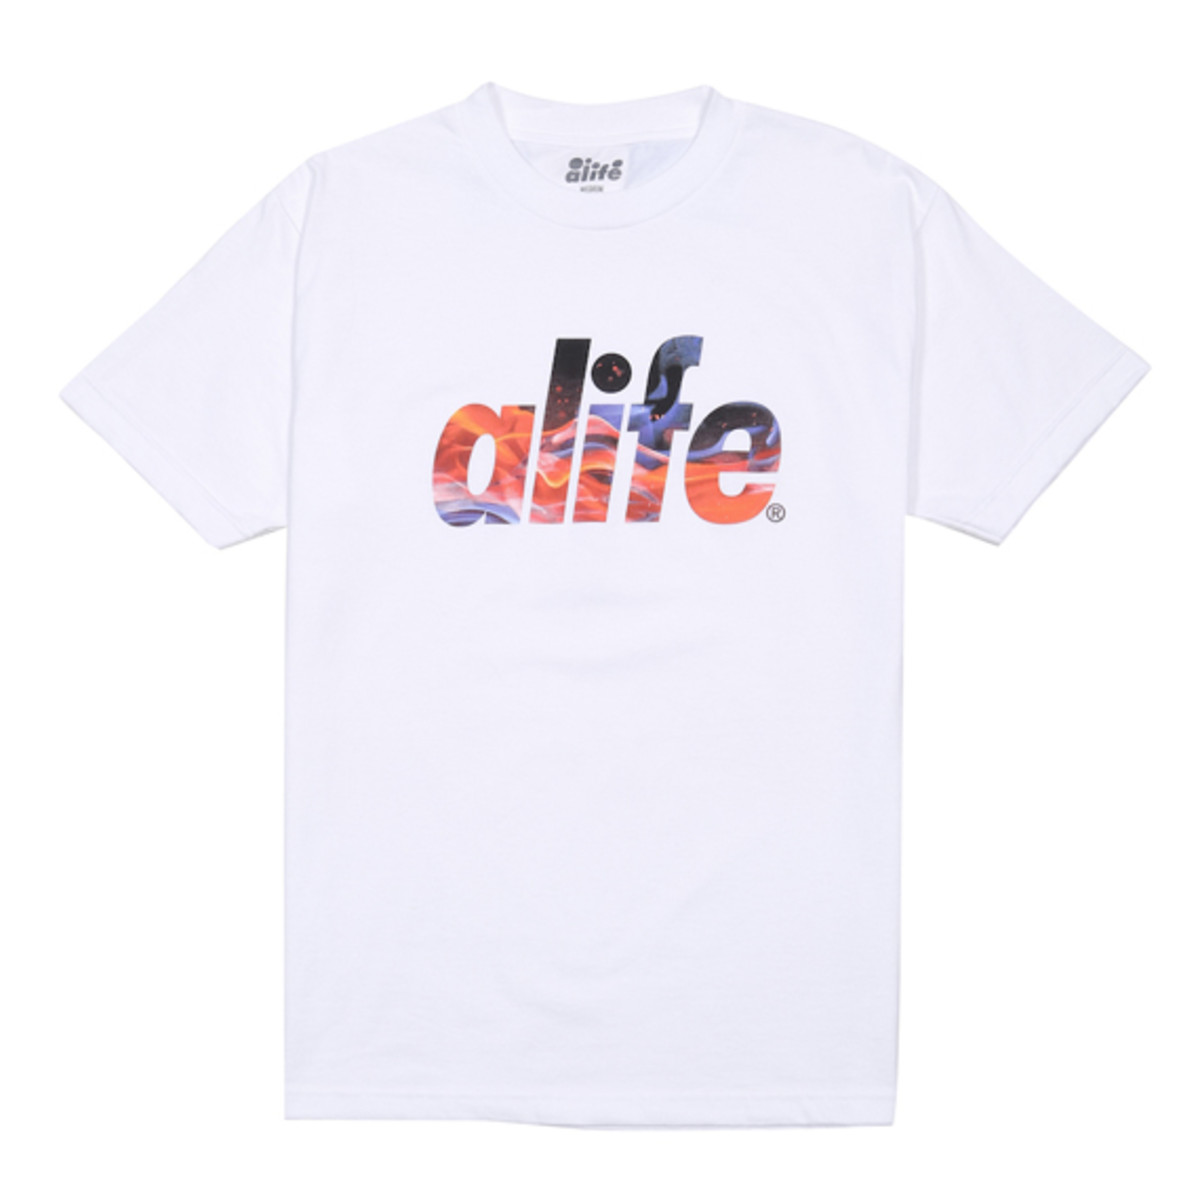 alife-tshirts-october-2013-releases-08